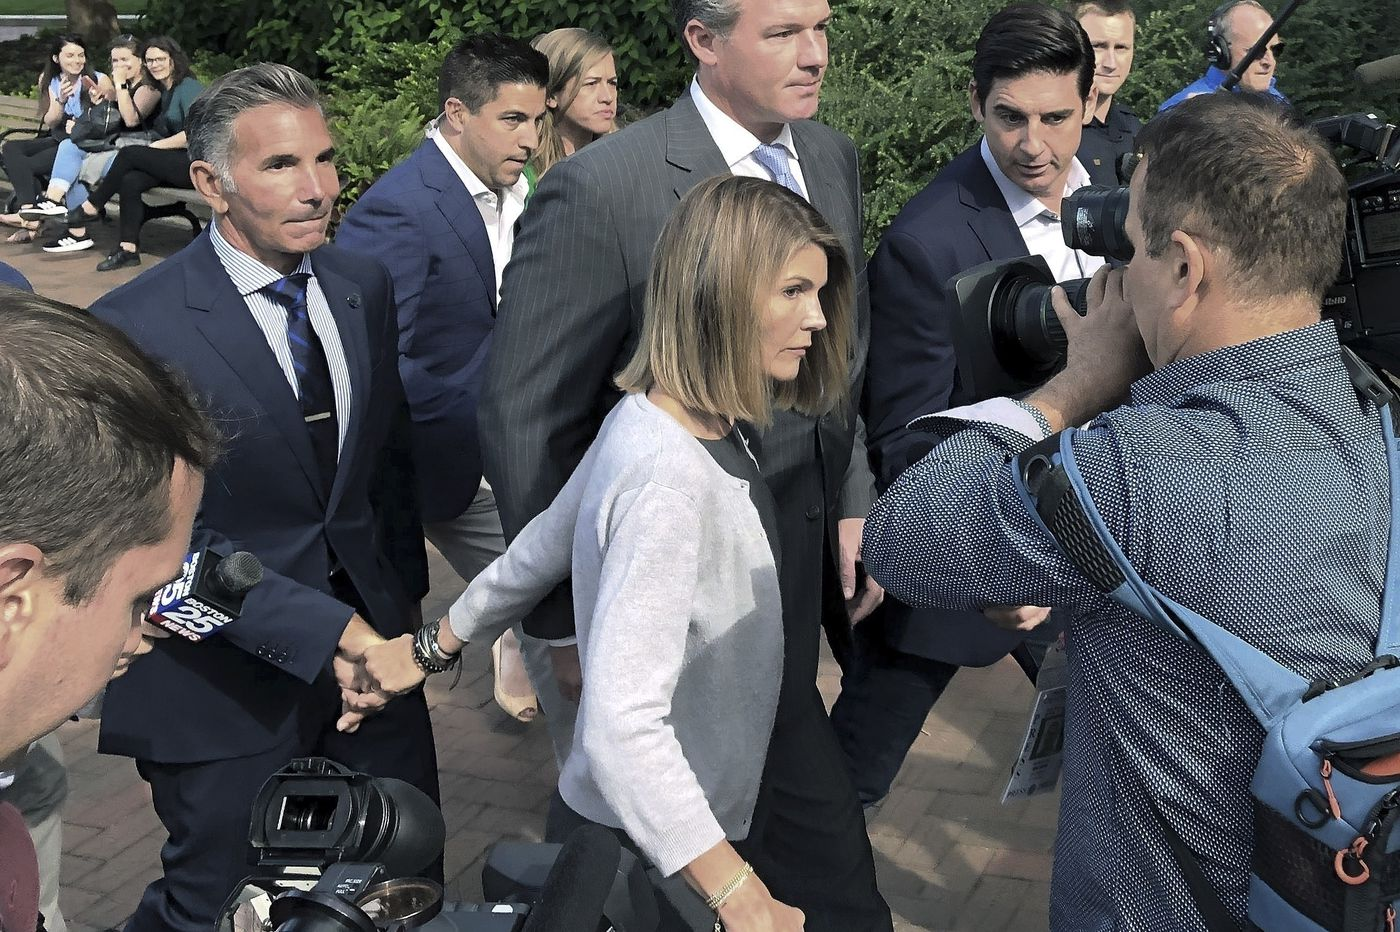 Lori Loughlin and Mossimo Giannulli plead guilty in college admissions scam, await fate